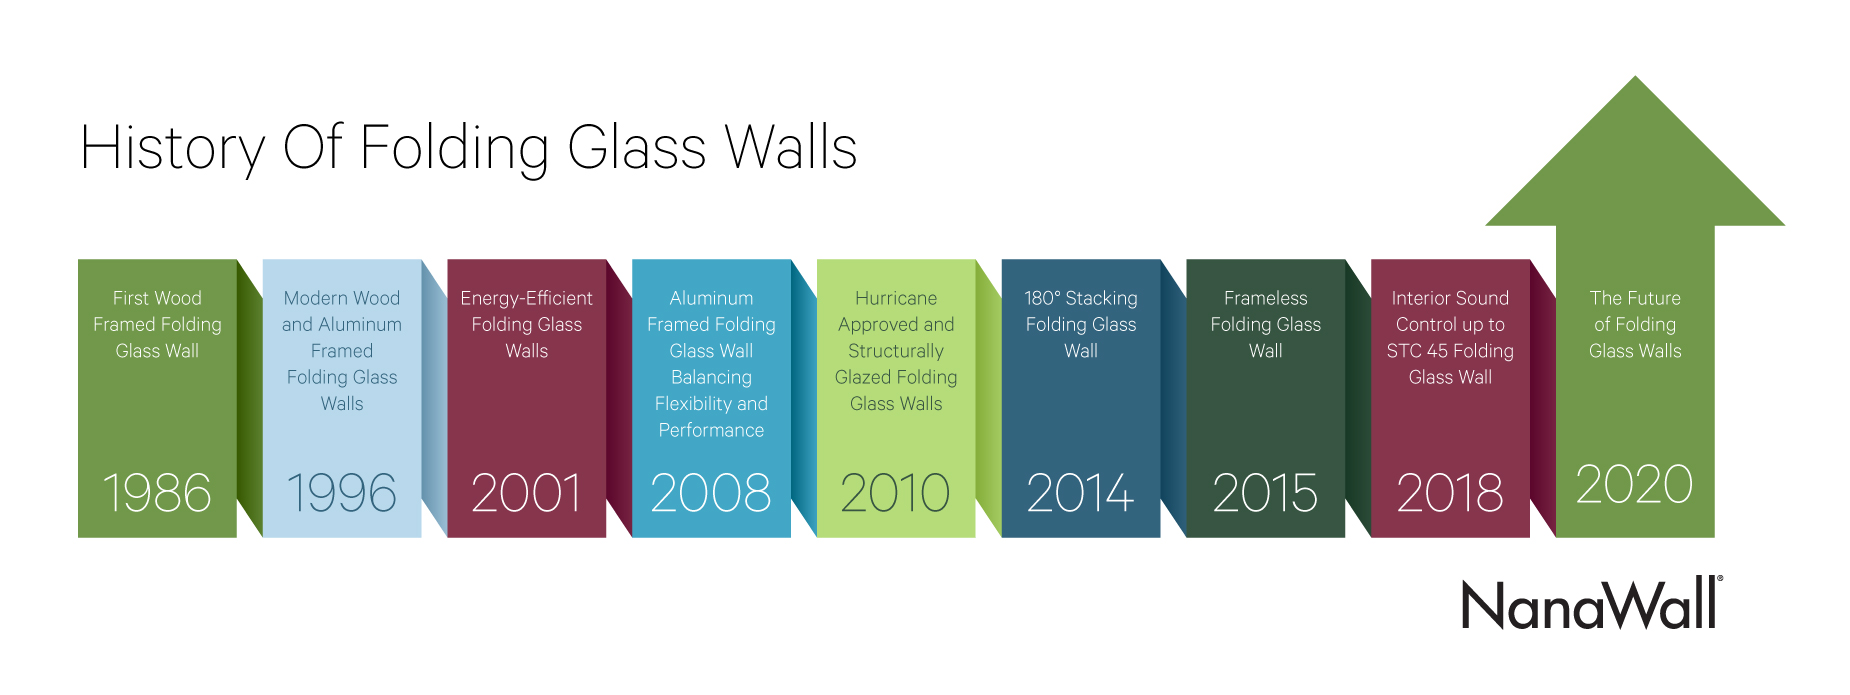 the history of folding glass walls